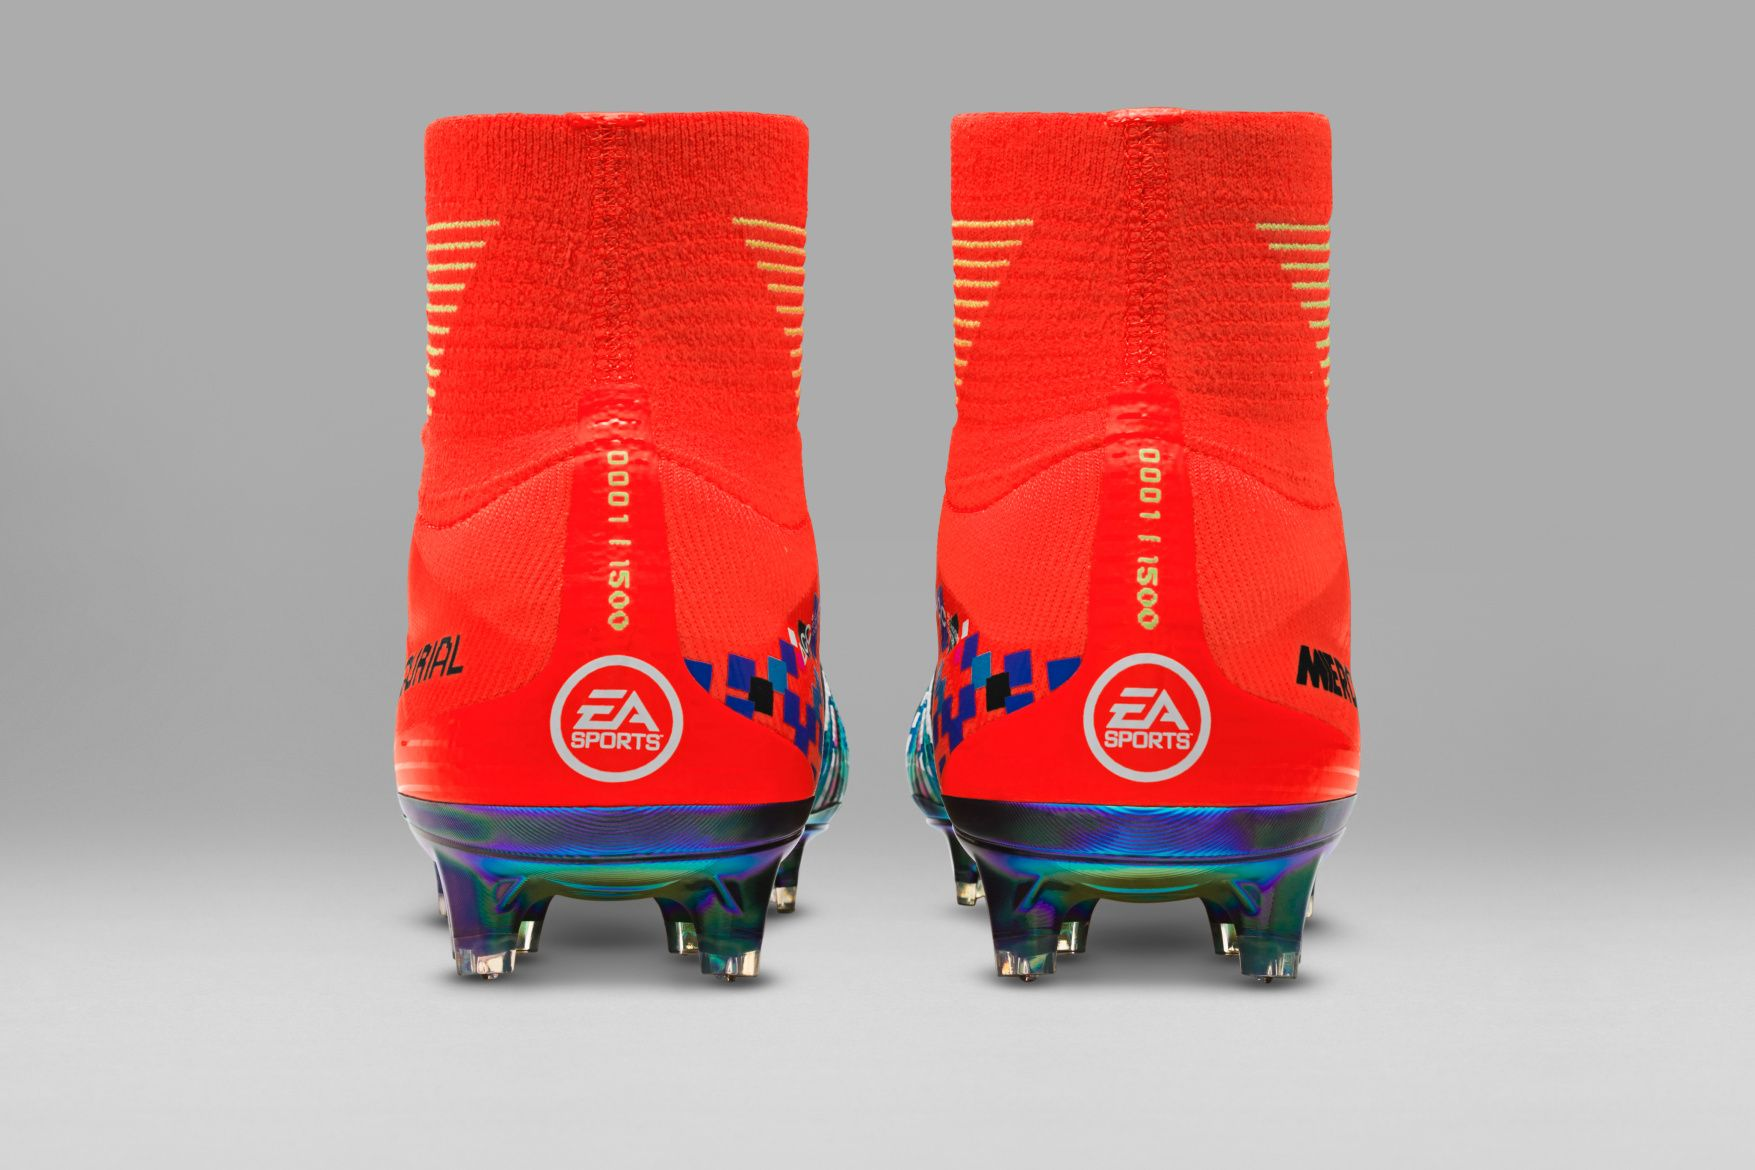 68e37f261b837 Nike s Mercurial Superfly x EA Sports Football Cleats are a Pixilated Dream…